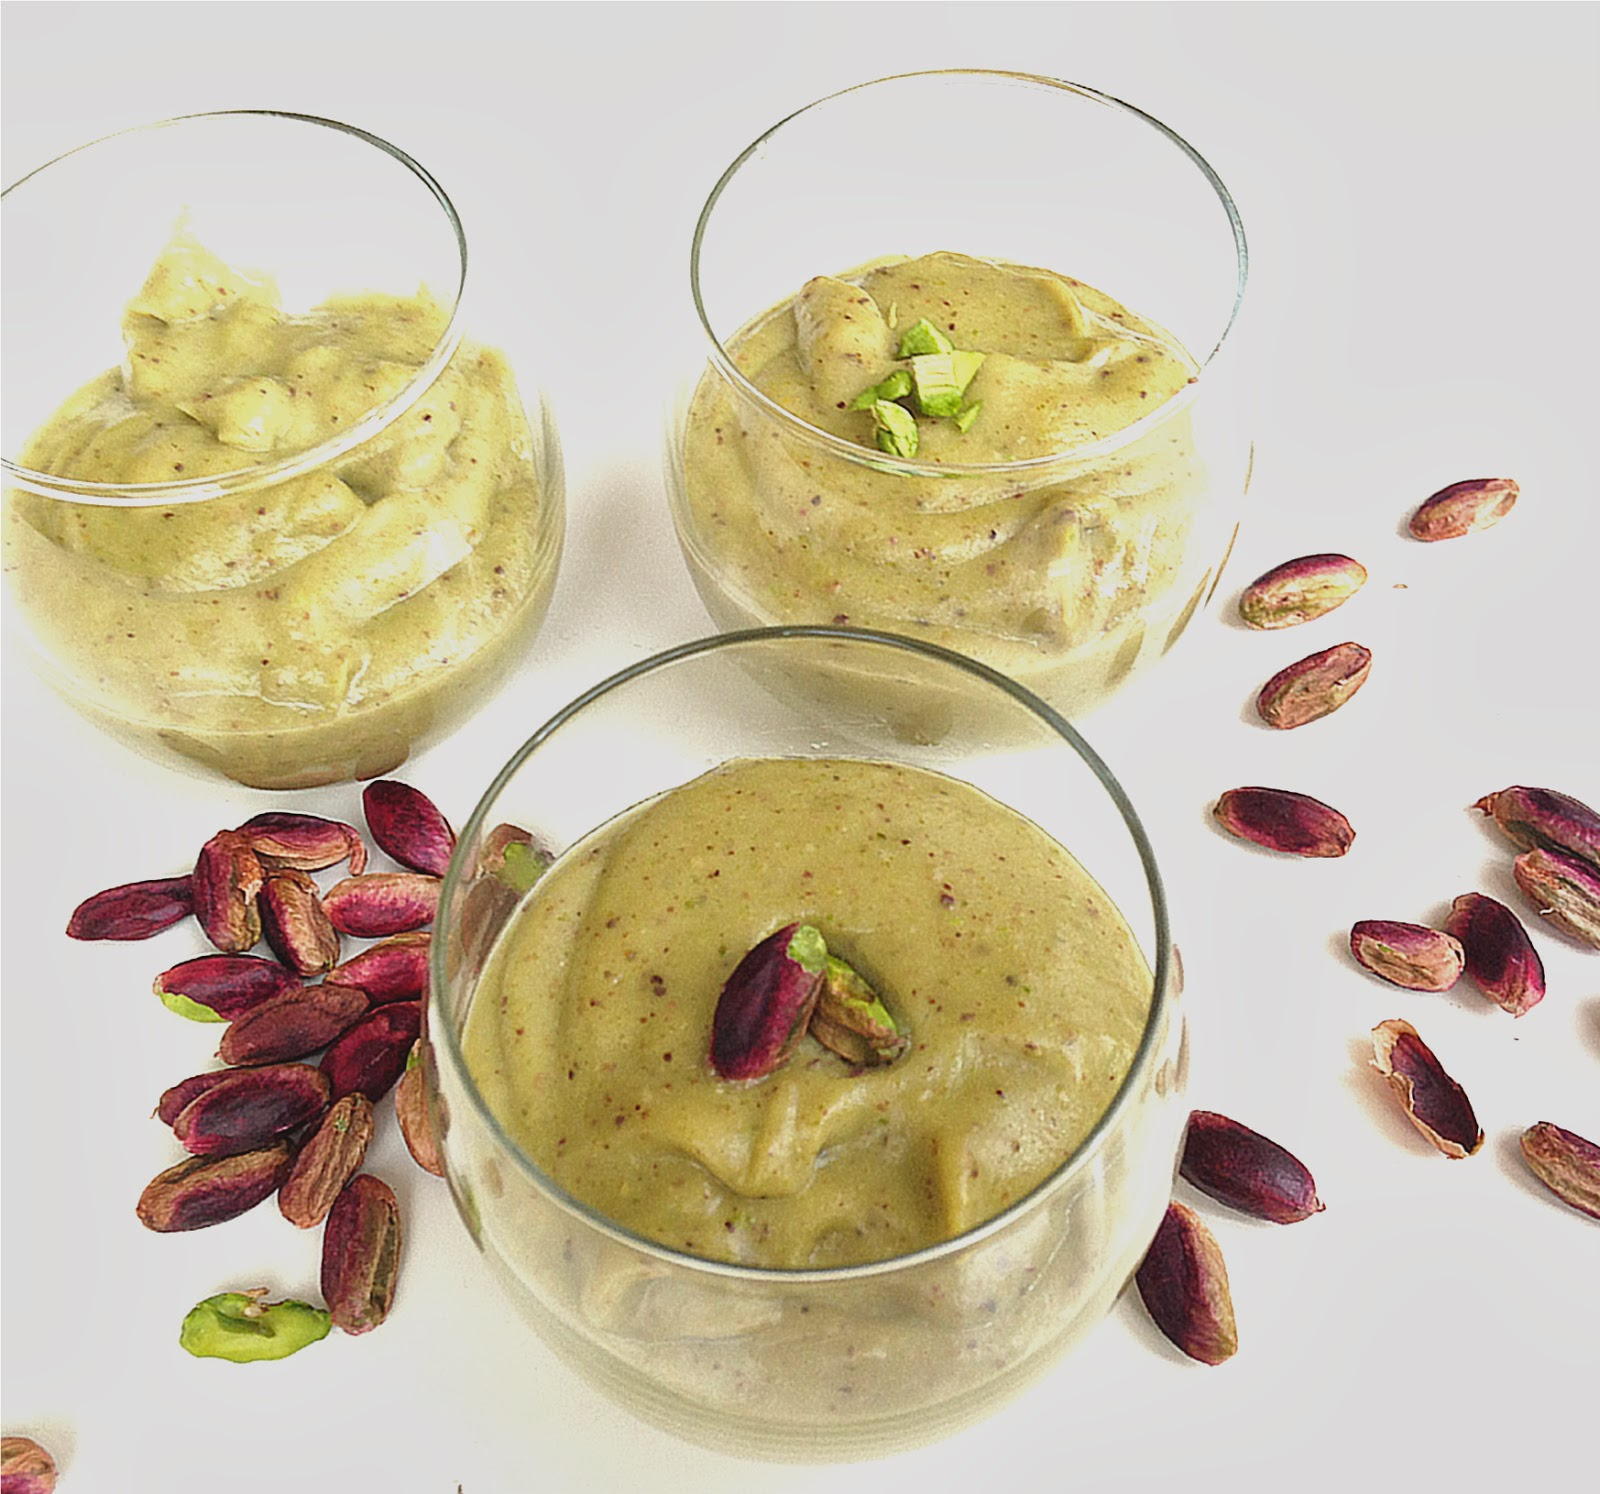 Nuts about food: All-natural homemade pistachio pudding